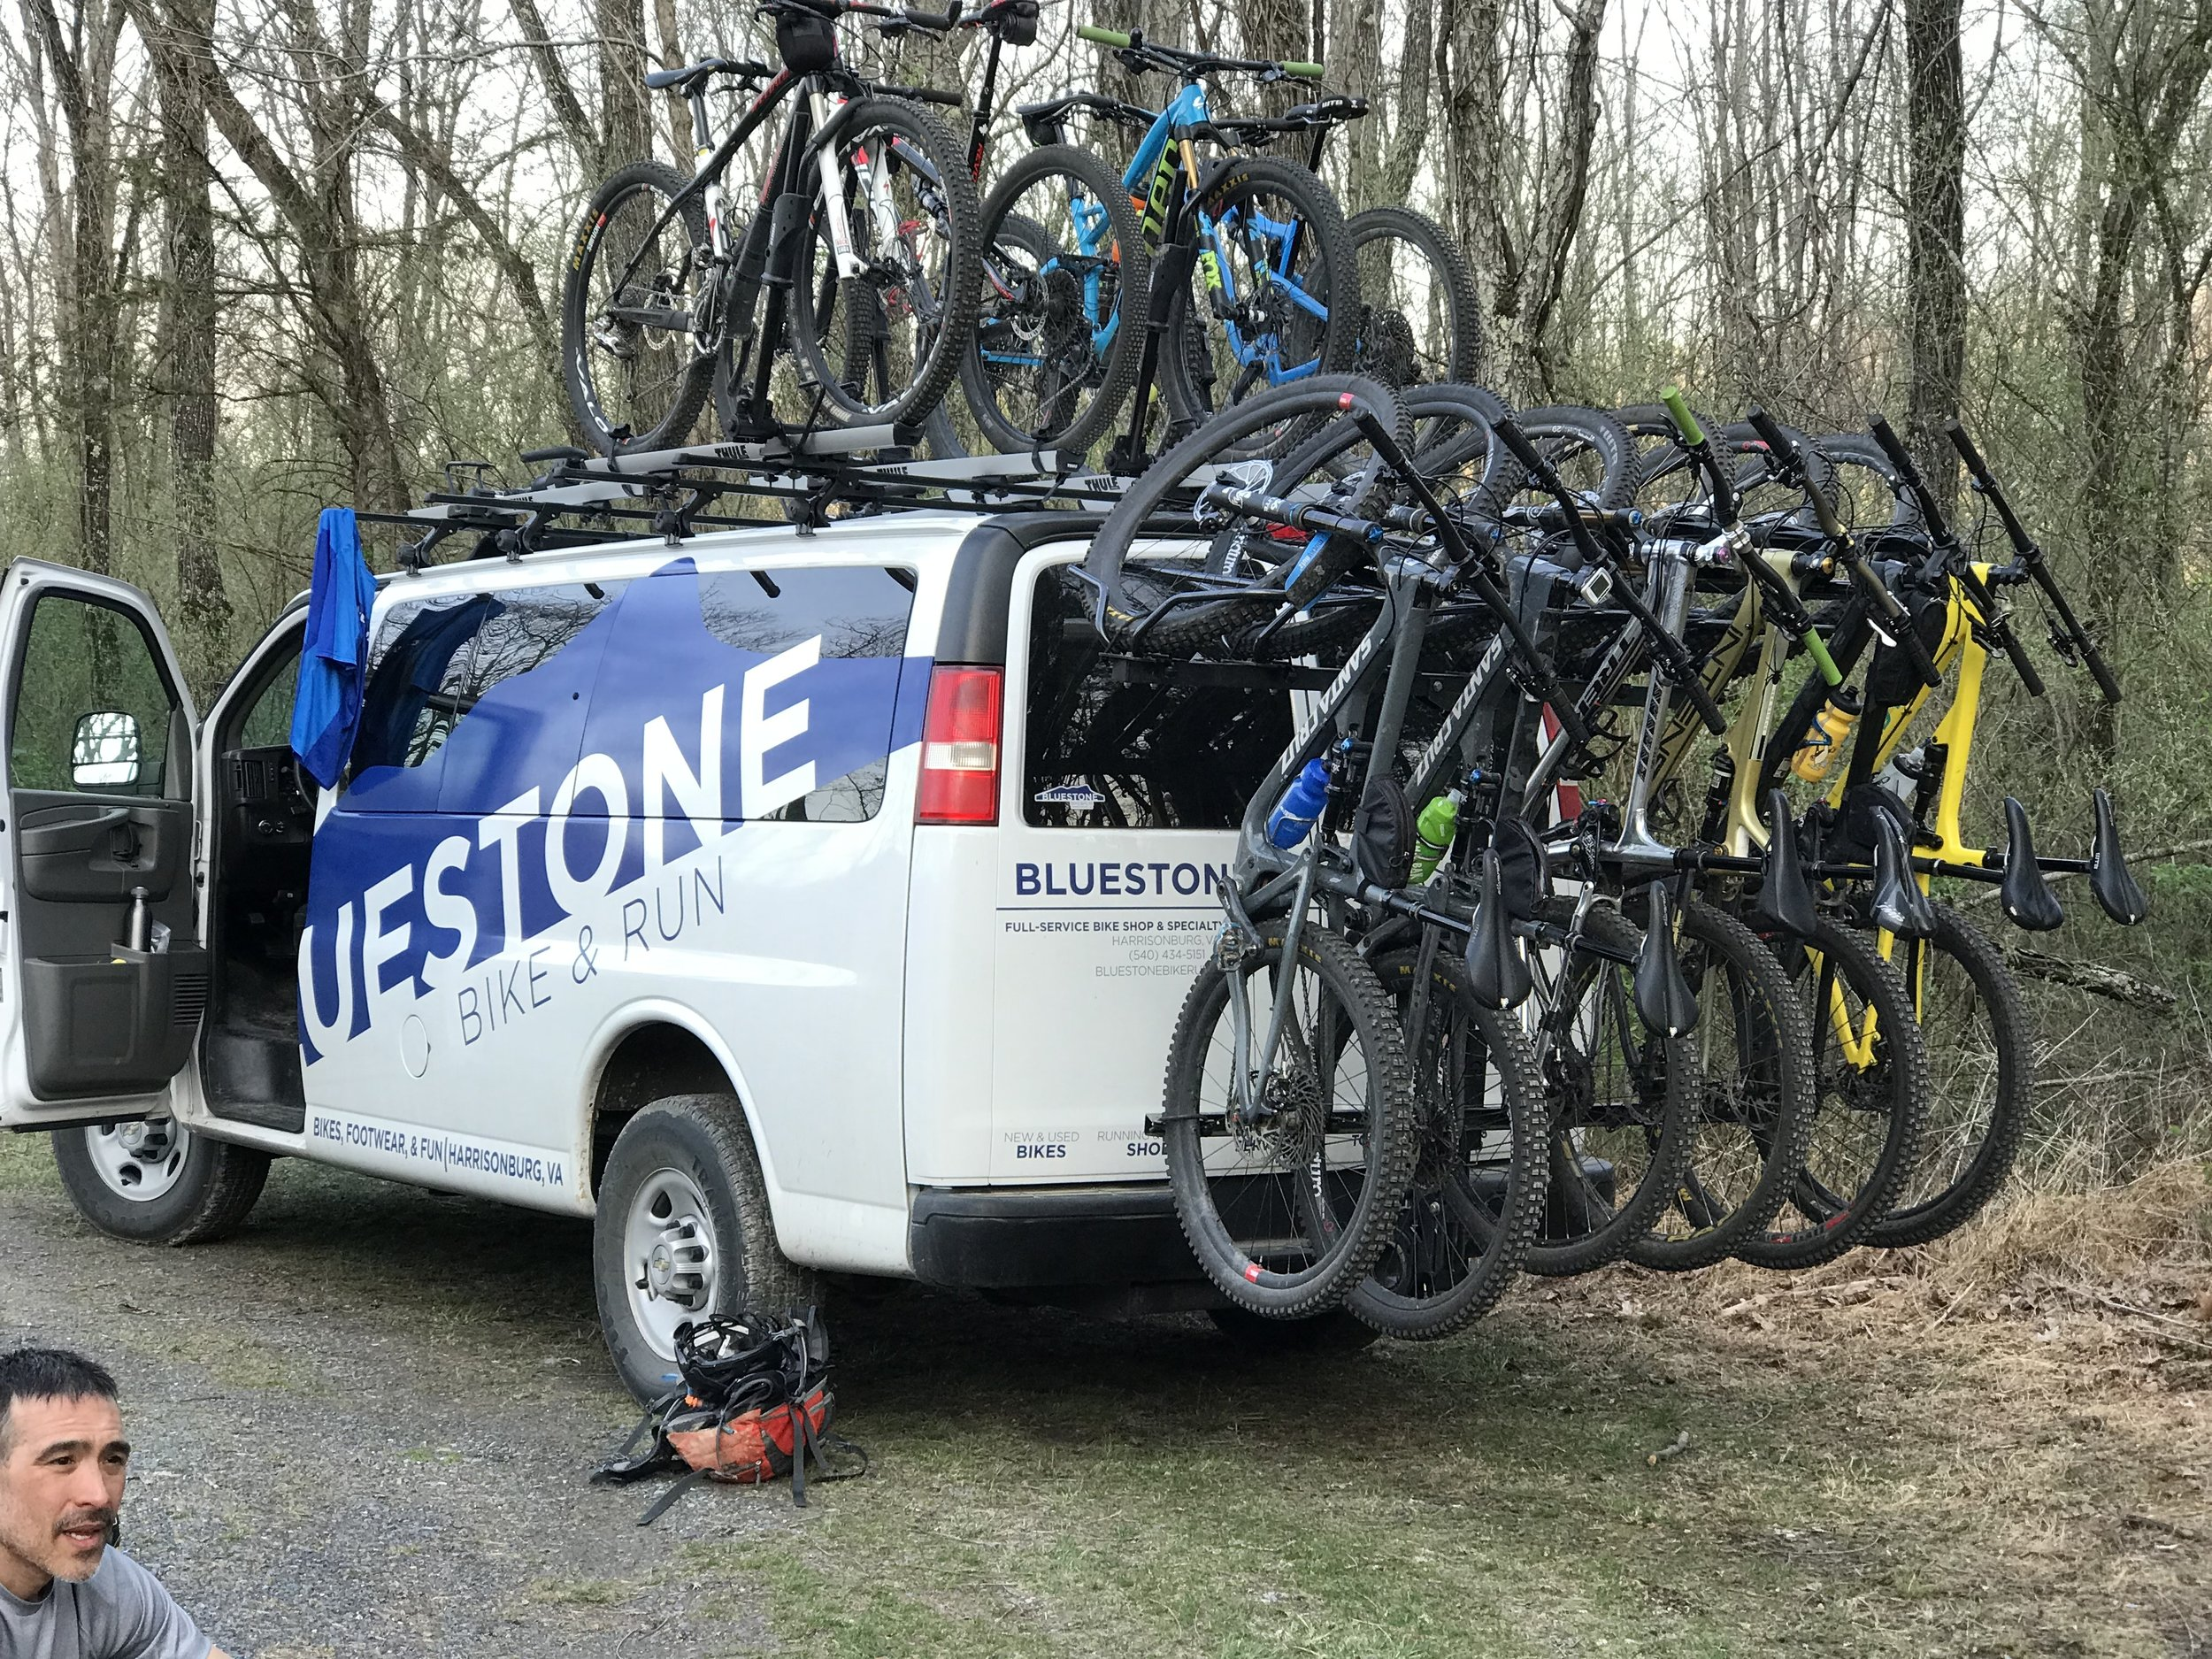 The Bluestone Bus loaded up after a tough ride on Beards Mountain